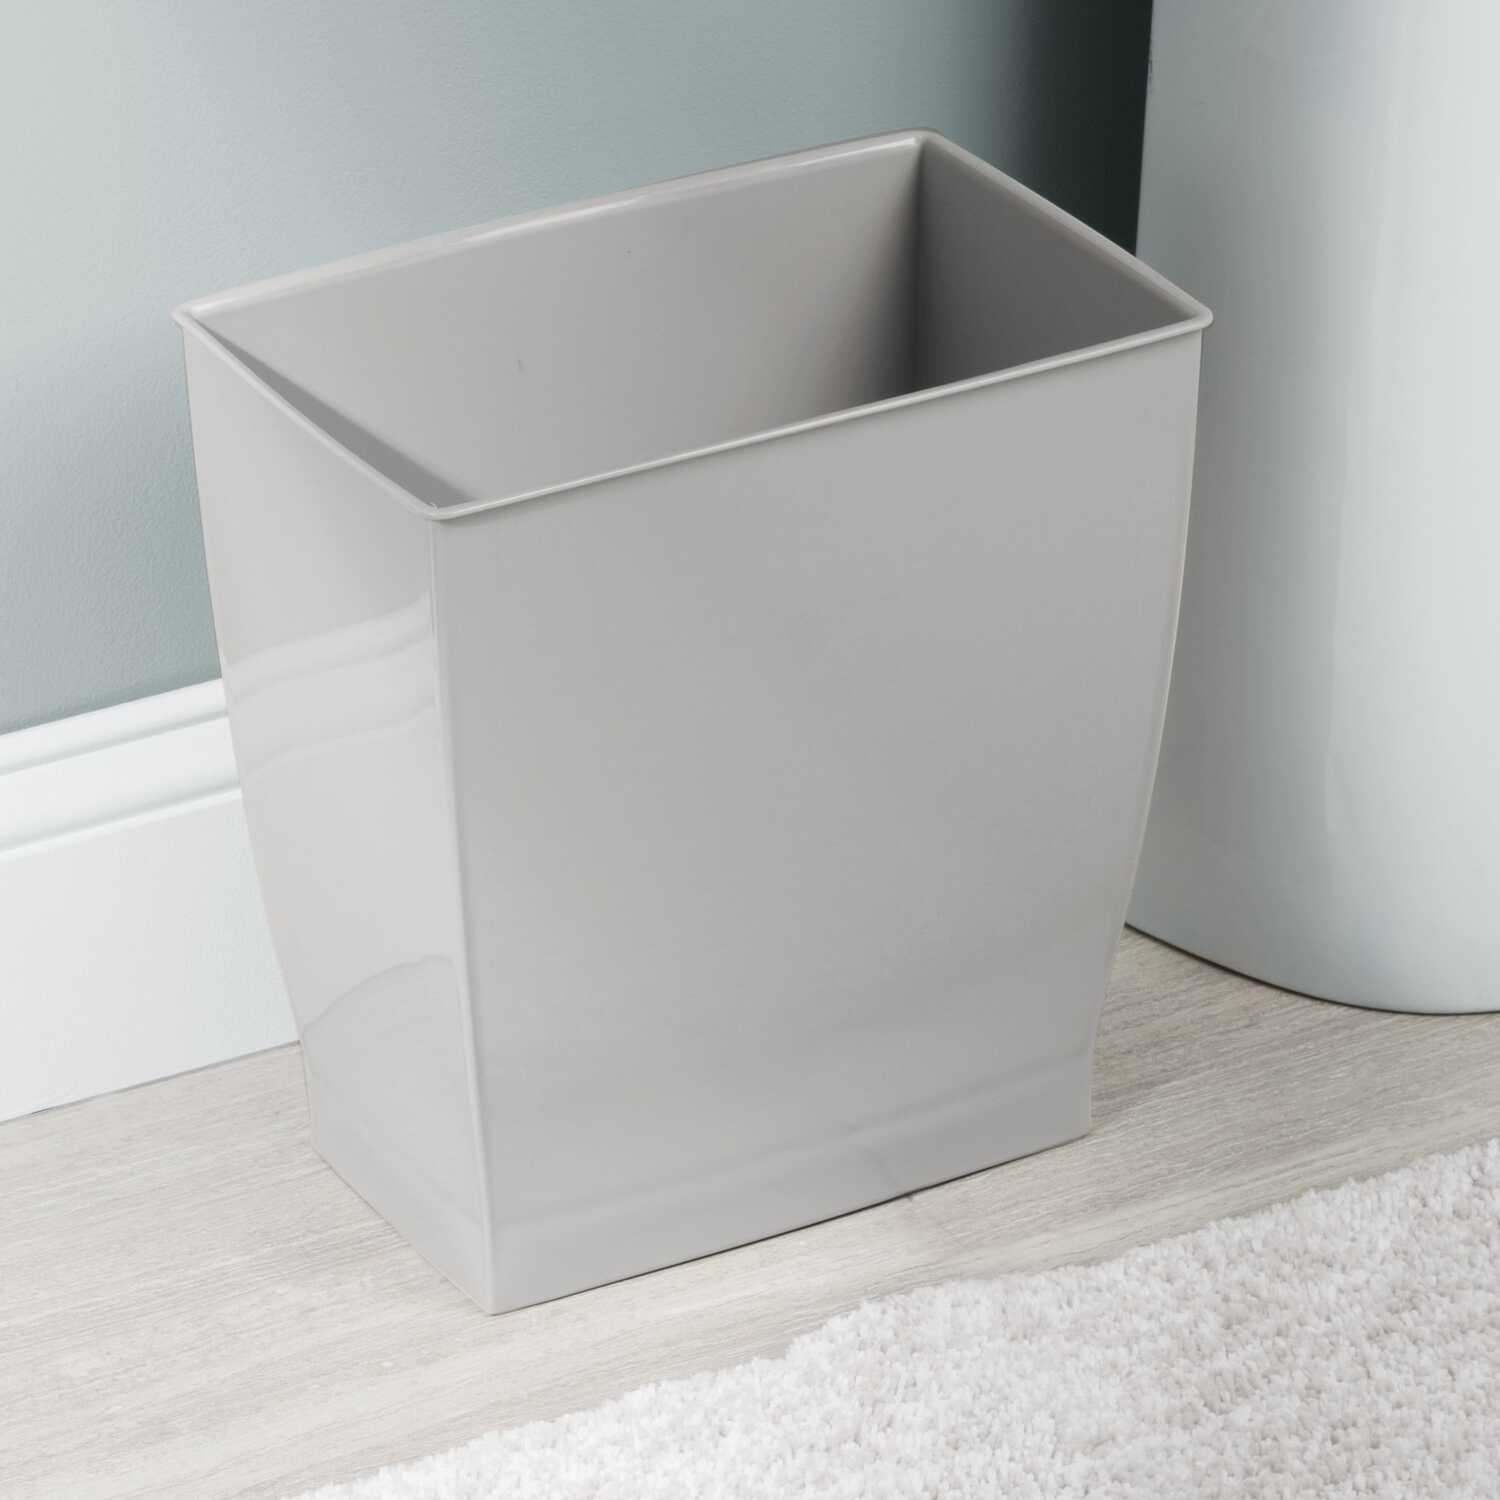 InterDesign  Mono  Gray  Rectangular  Wastebasket